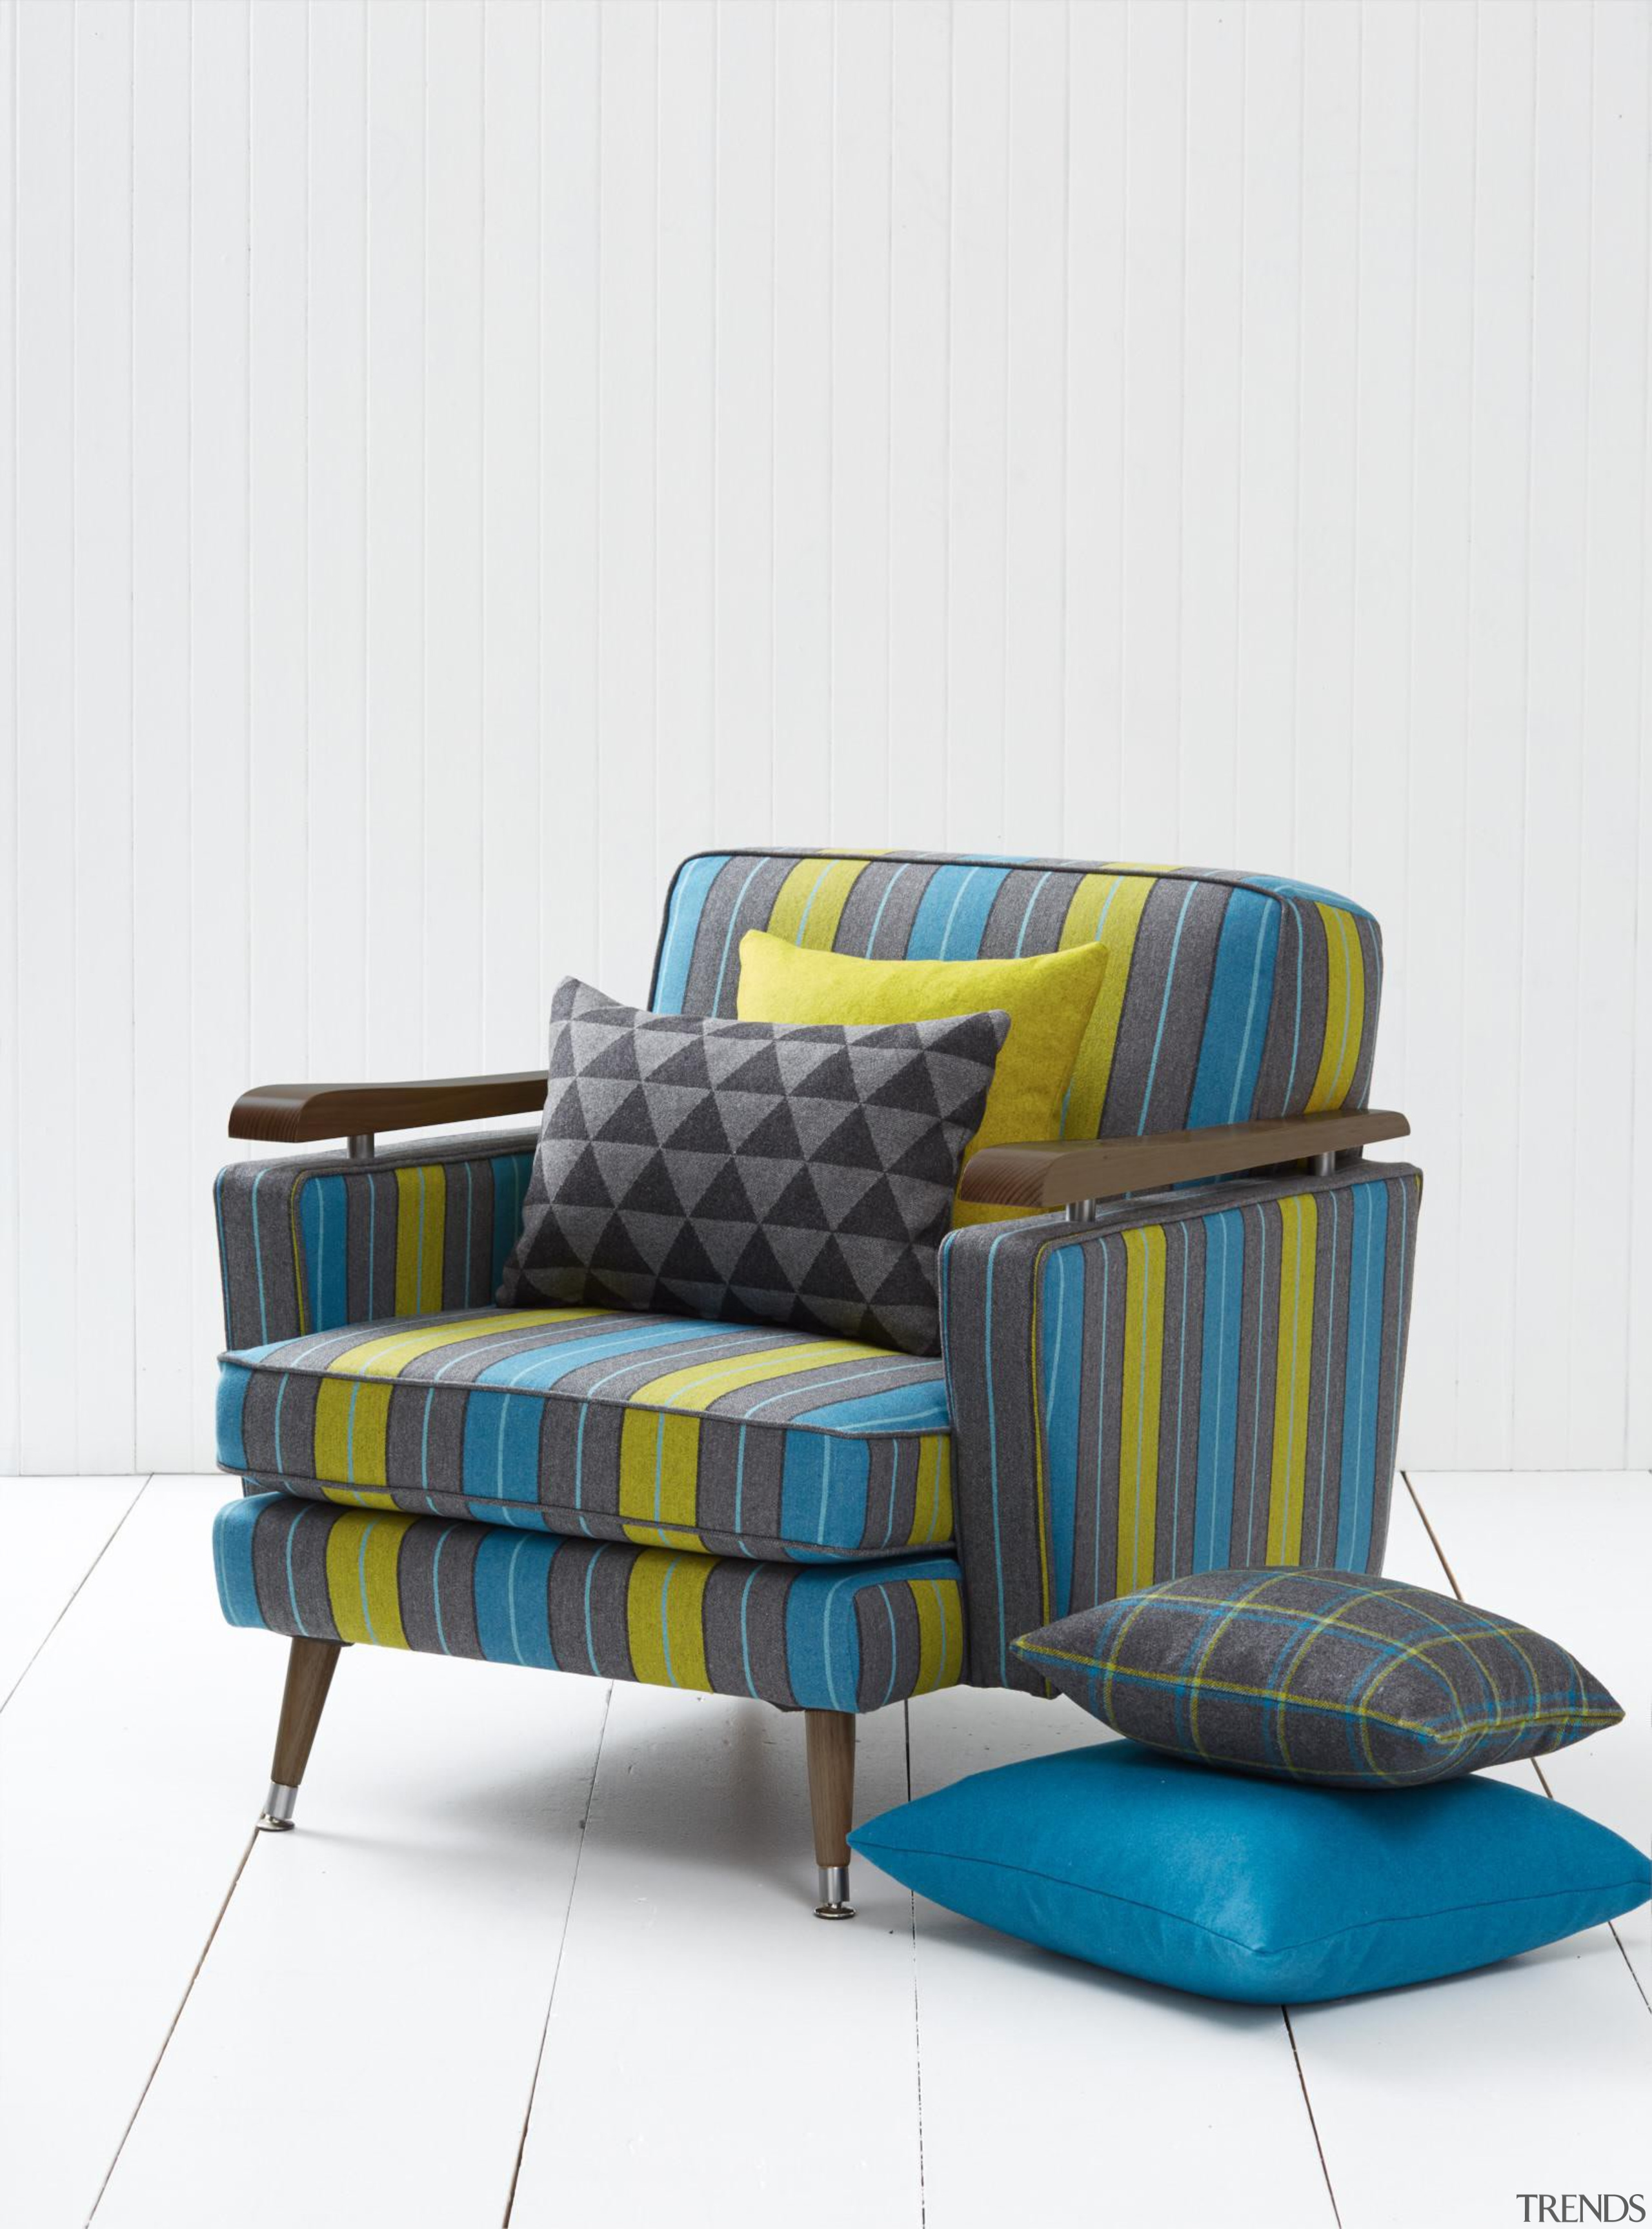 Richmond is an exciting addition to ourgrowing European chair, couch, furniture, product, product design, white